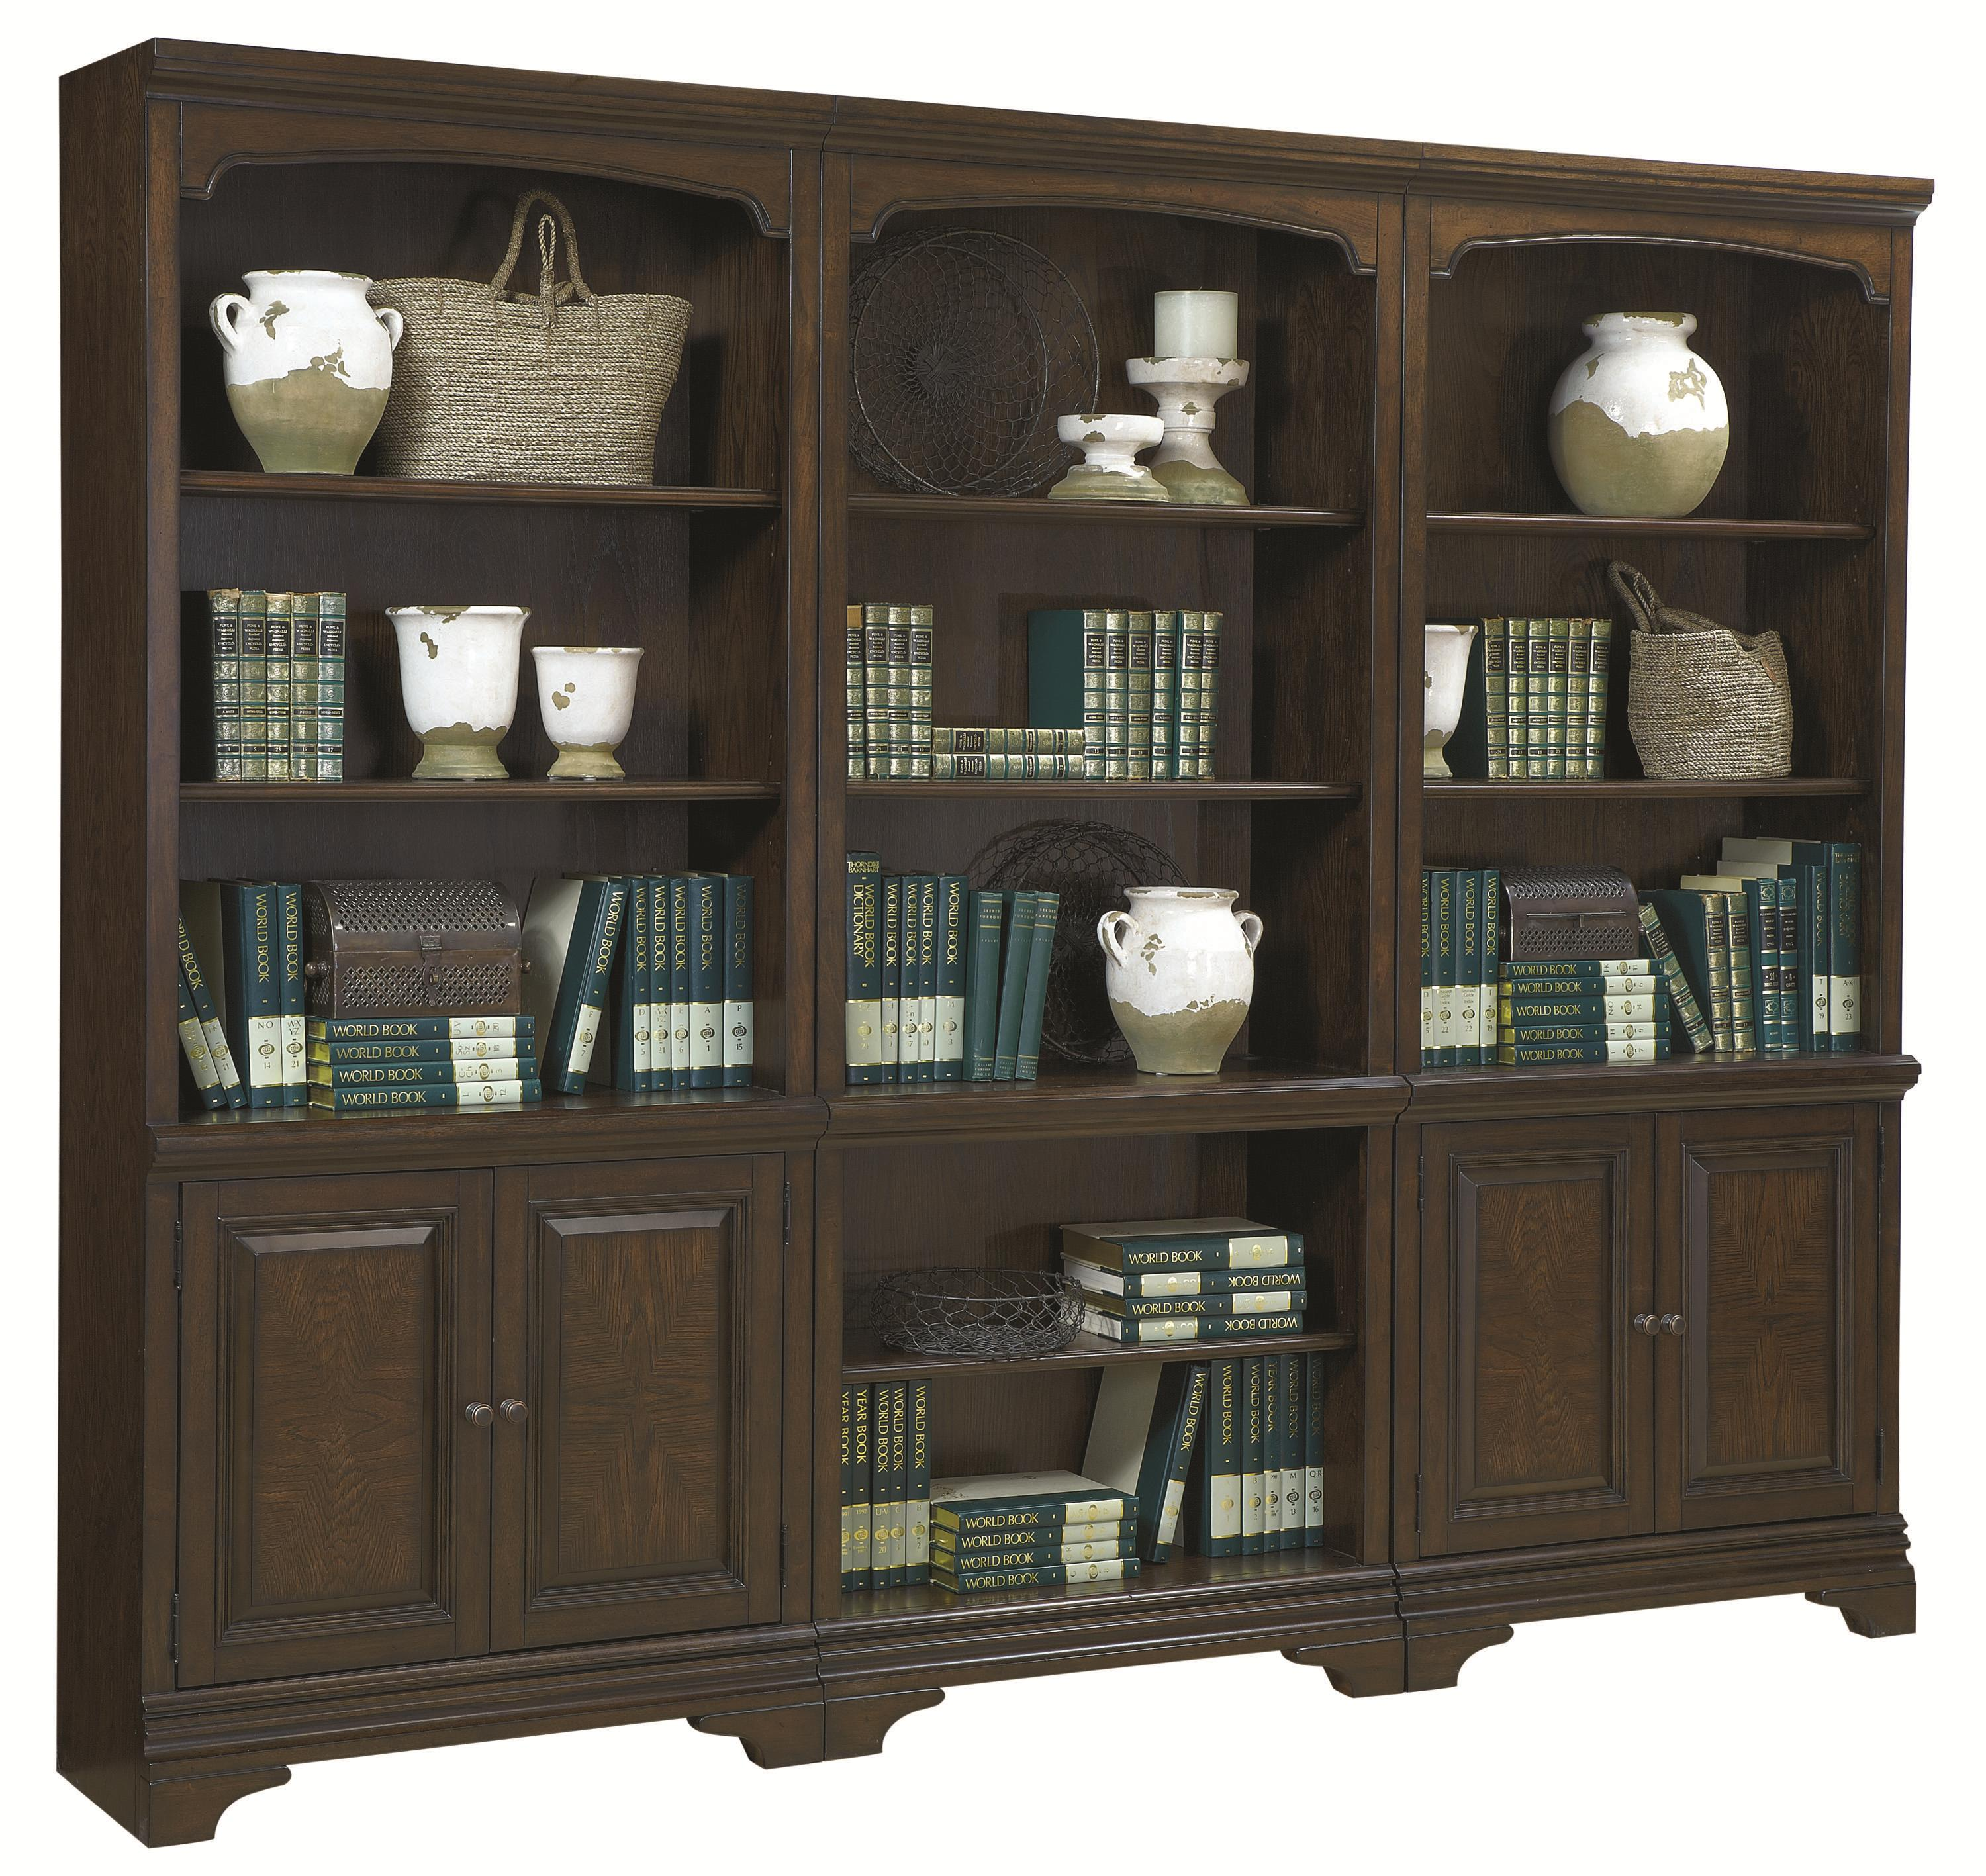 Aspenhome Essex 3 Piece Bookcase - Item Number: I24-2X332+333